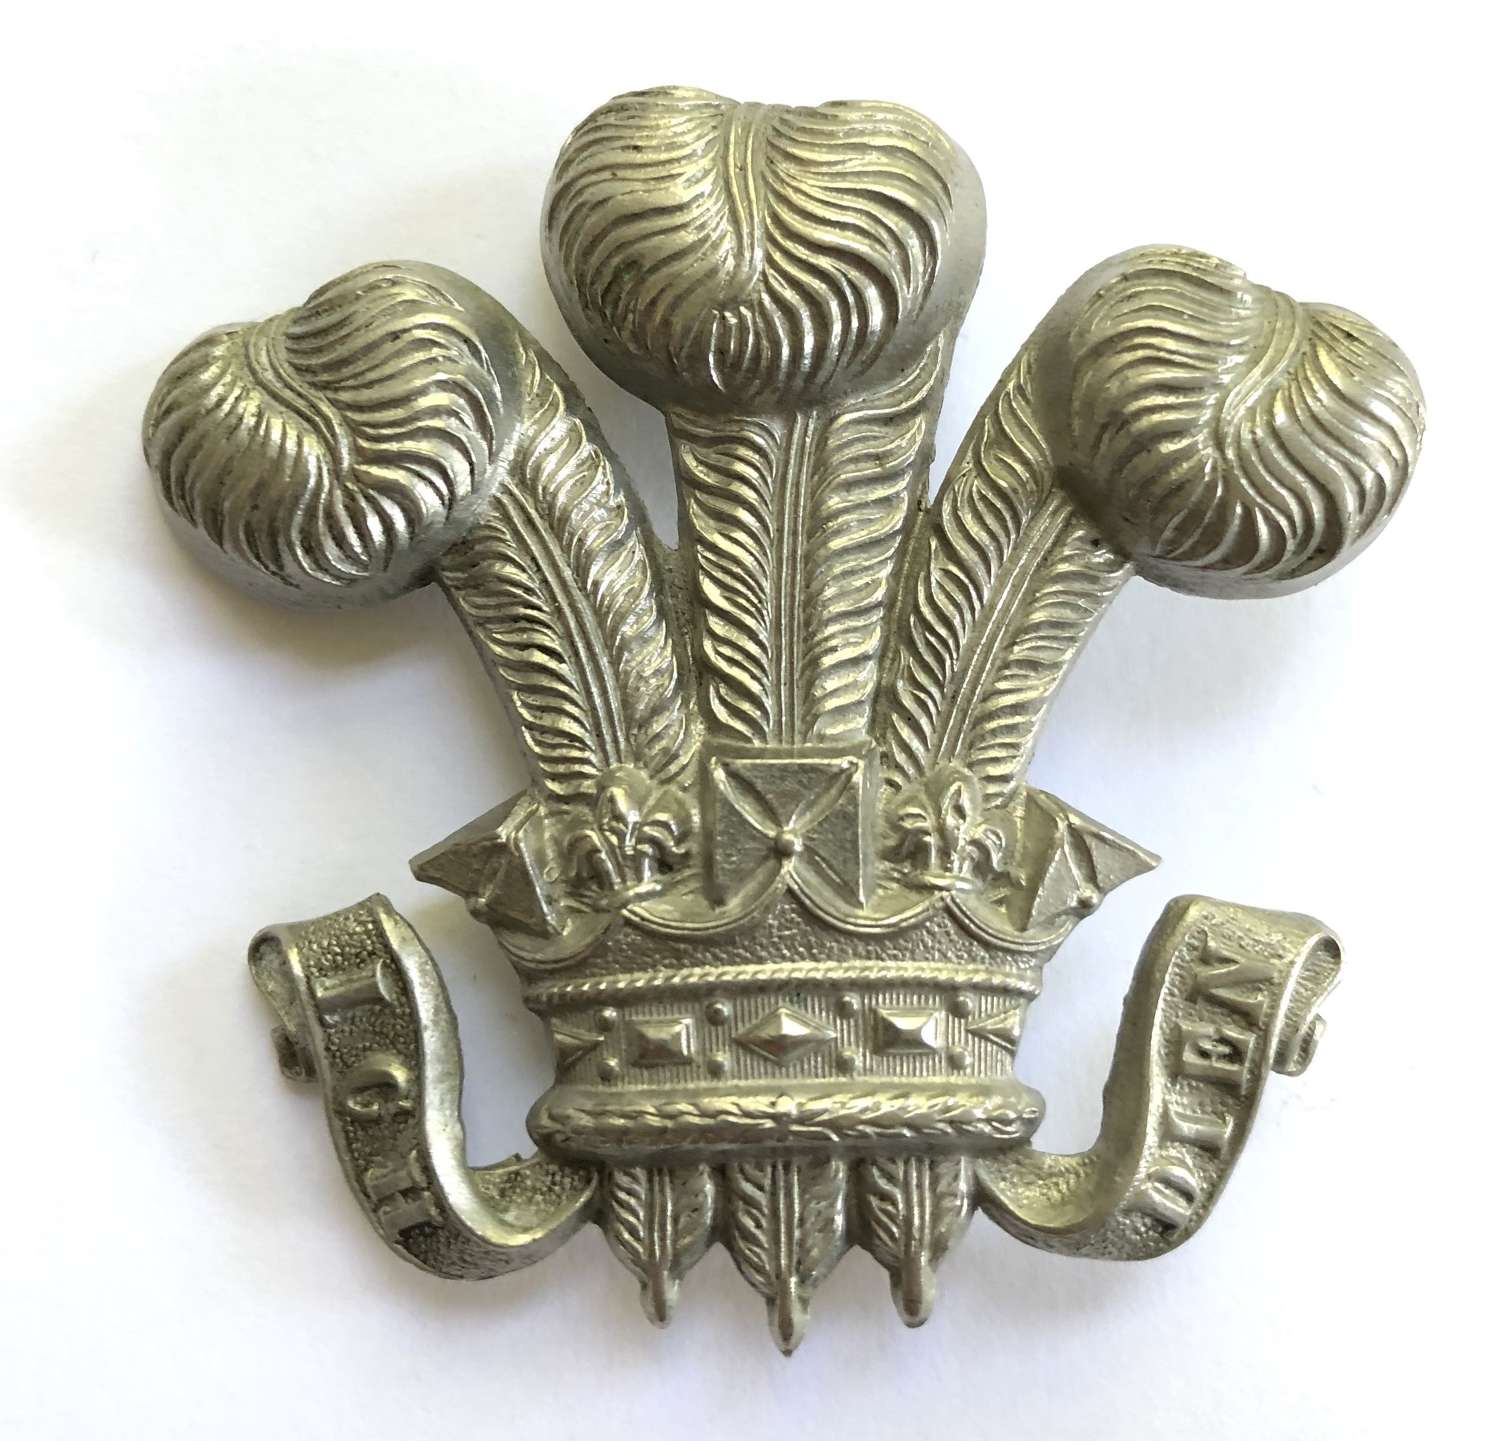 10th Royal Hussars NCO's arm badge